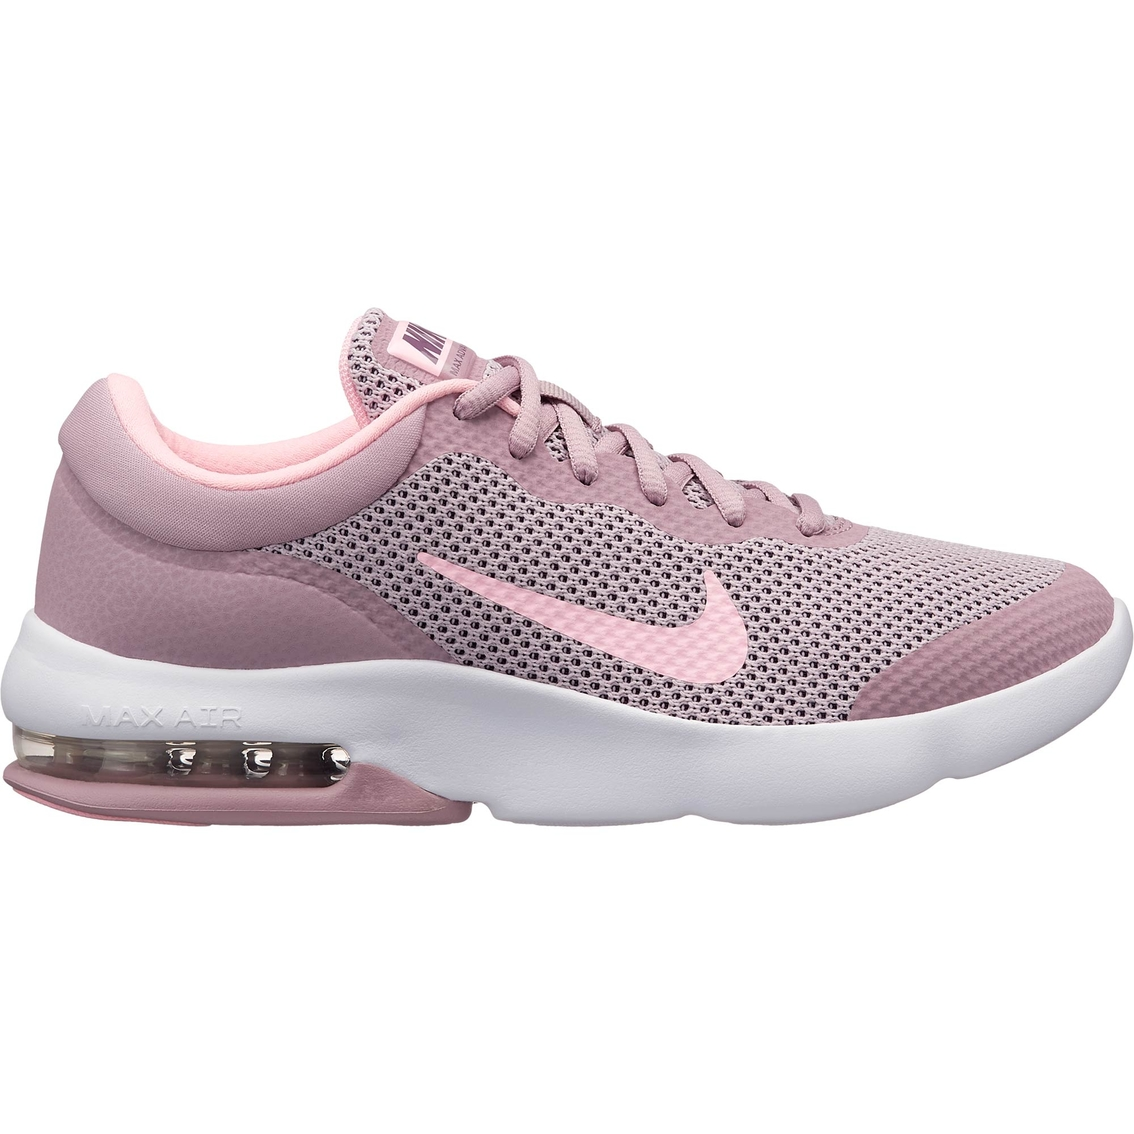 c9cc6cd79d Nike Women's Air Max Advantage Running Shoes | Running | Shoes ...